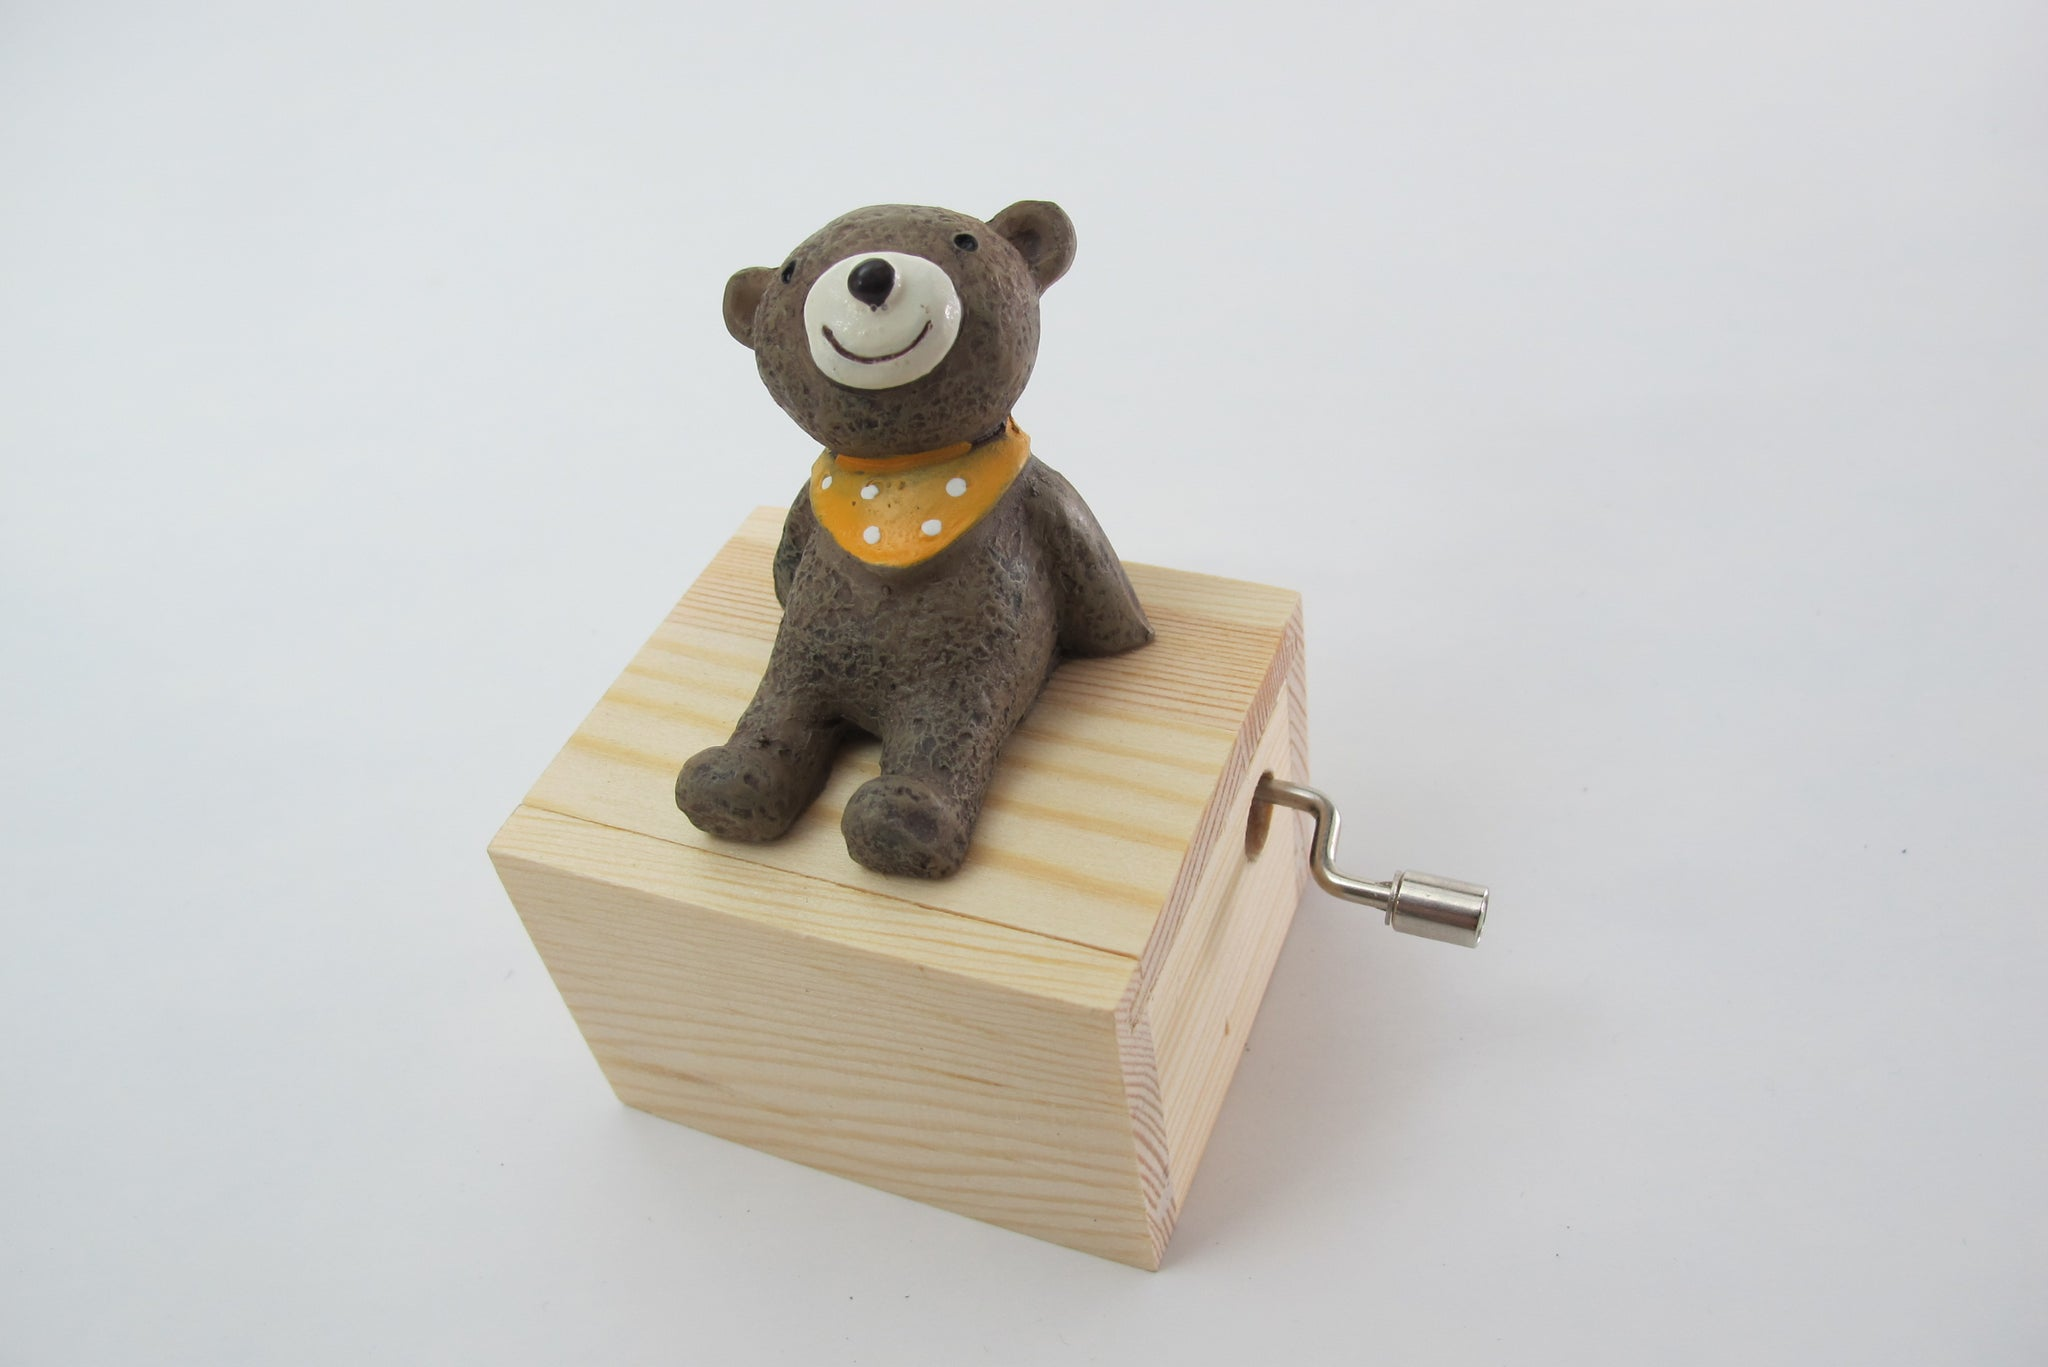 4-piece Gift Box + Teddy Bear Hand Crank Music Box Set